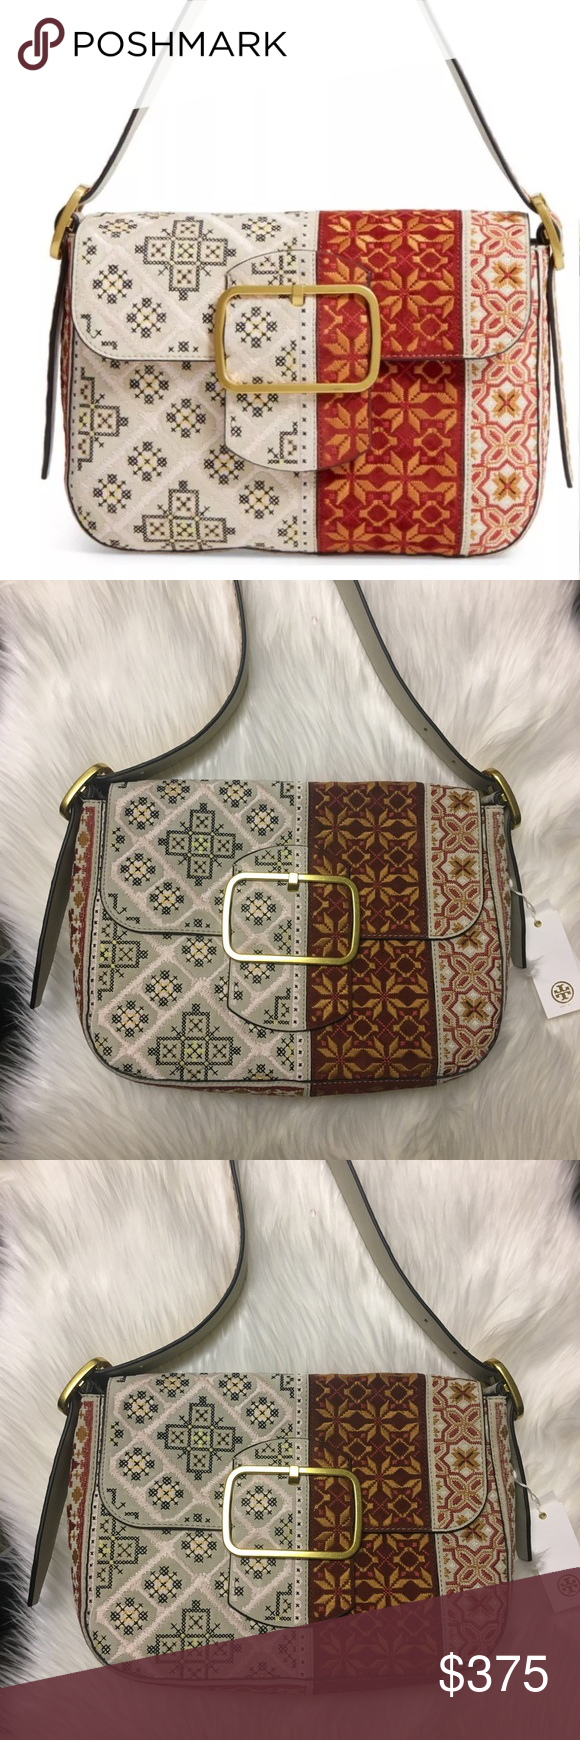 3a10b73112a8 TORY BURCH Sawyer Bohemian Embroidered Suede Bag Lightweight